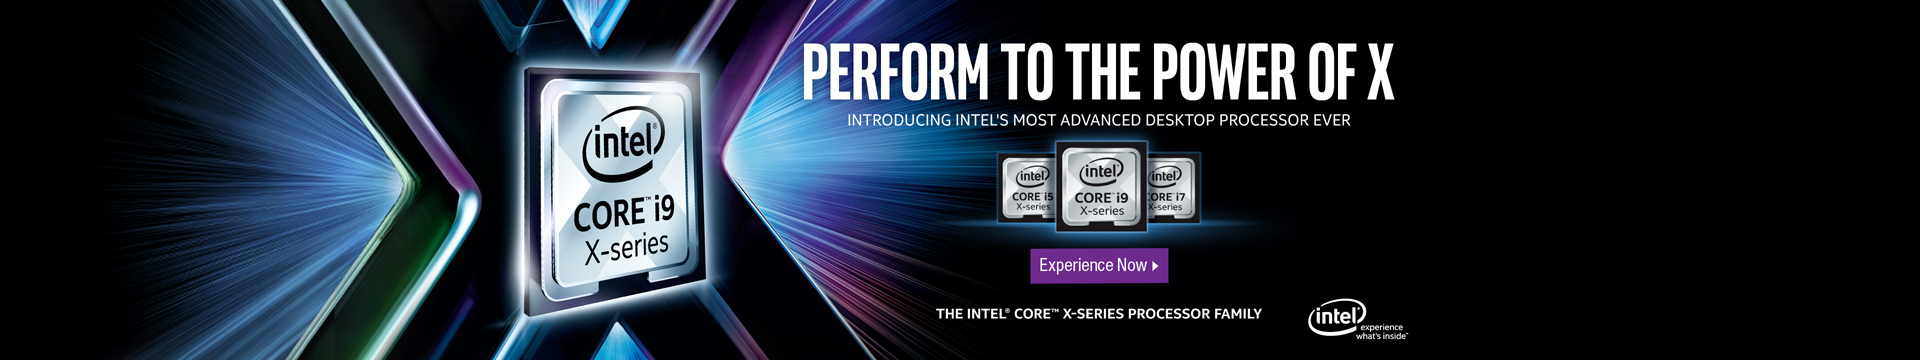 Intel Core Skylake-X and Kabylake-X Processors